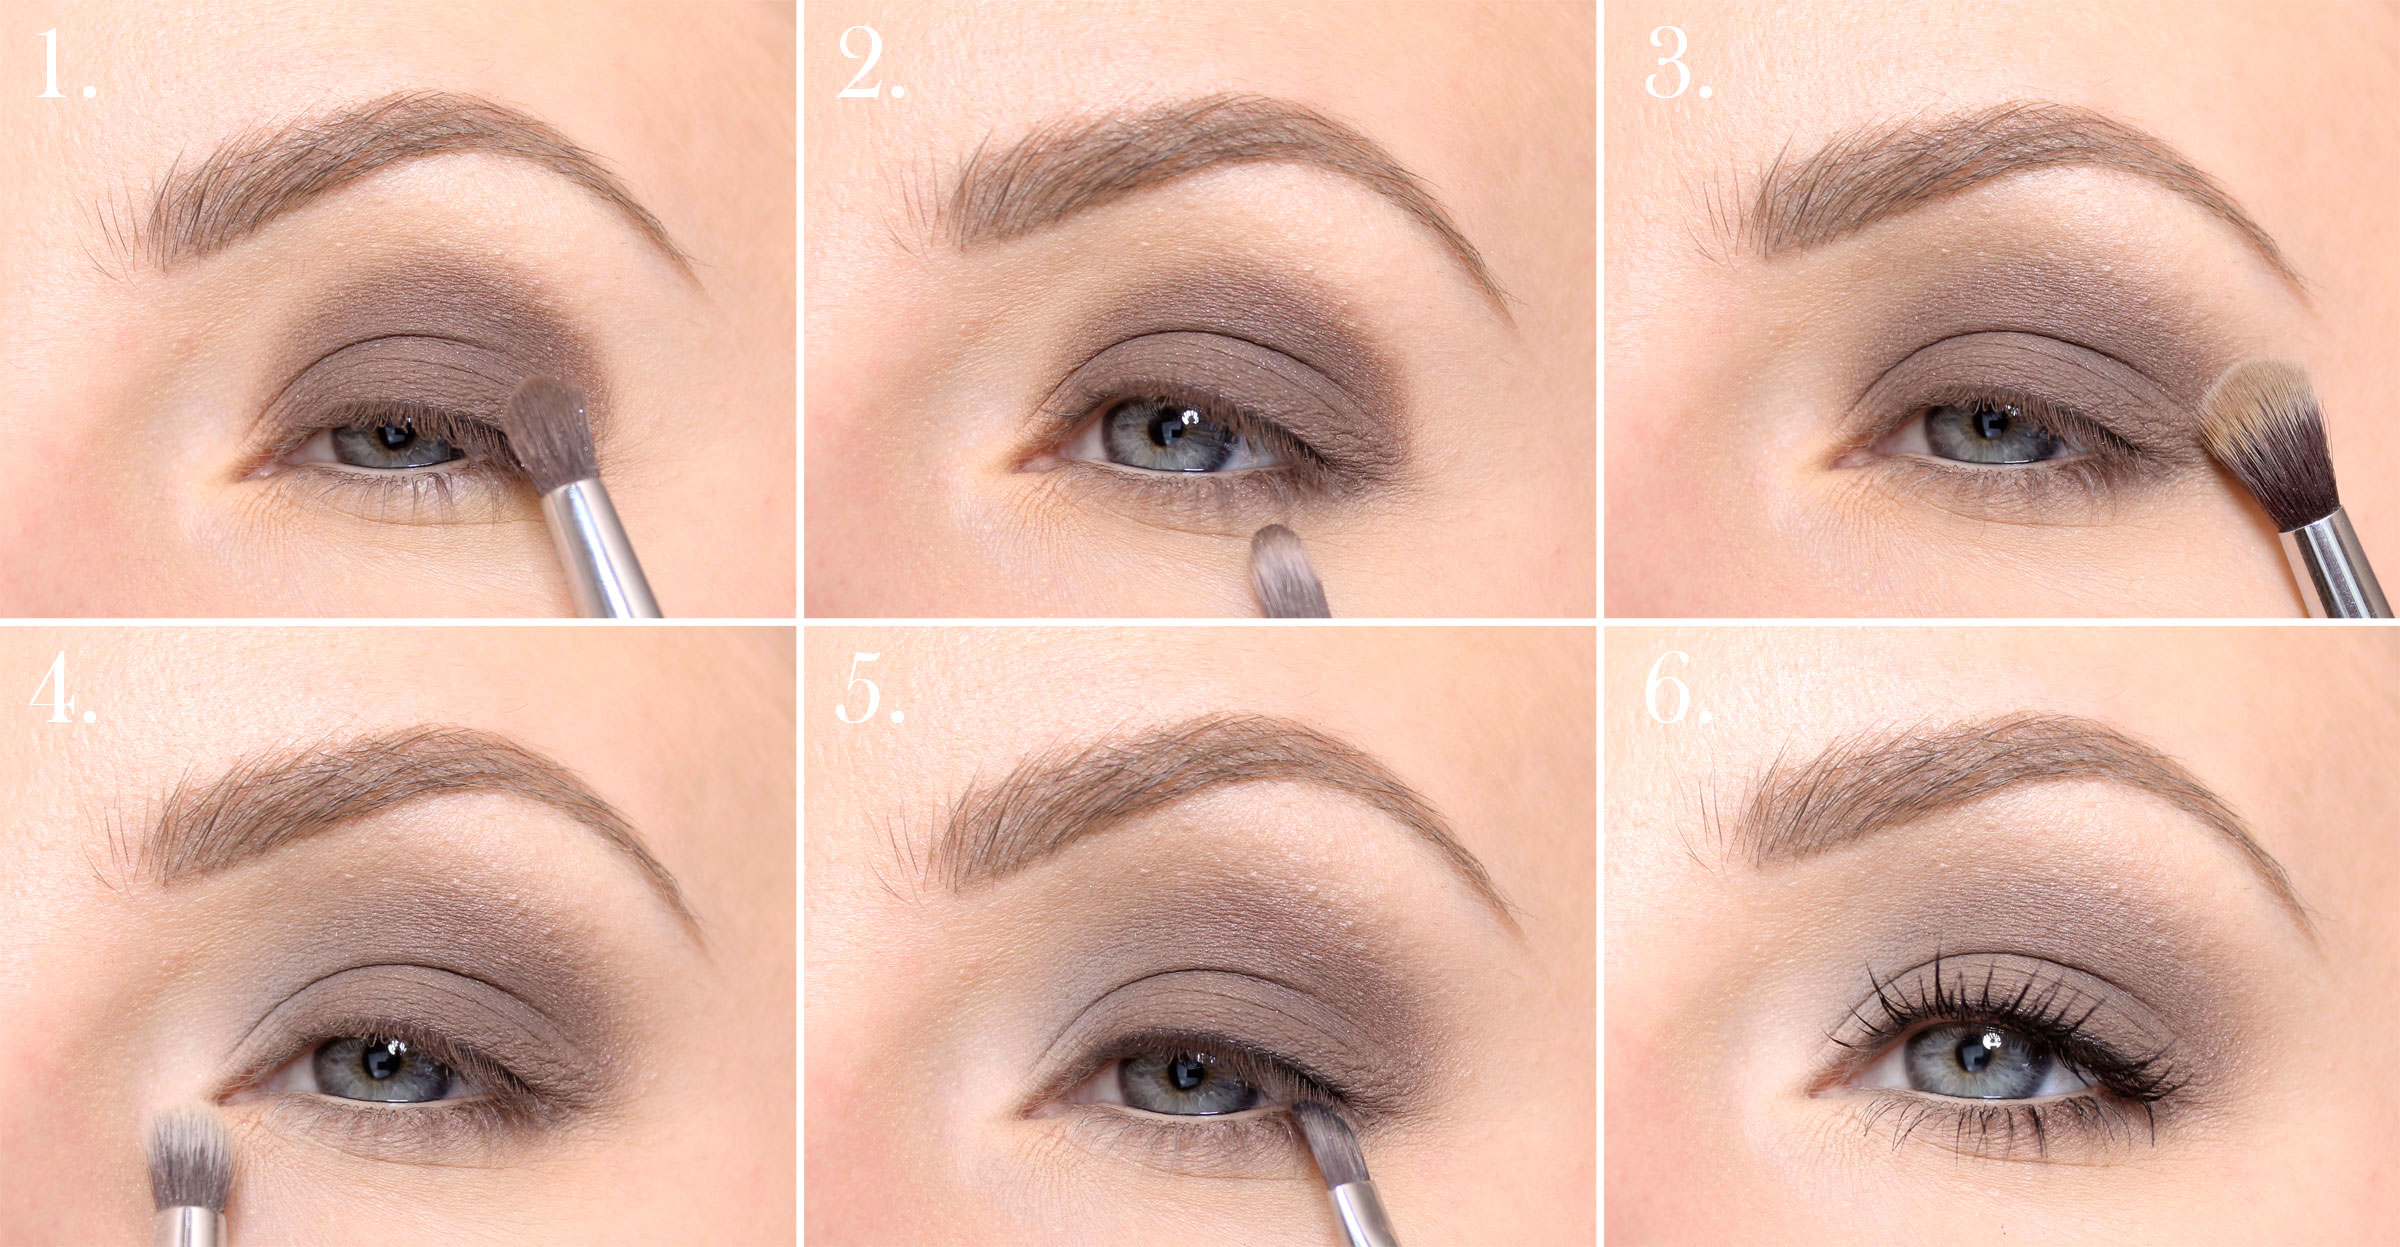 make-up for beginners step by step